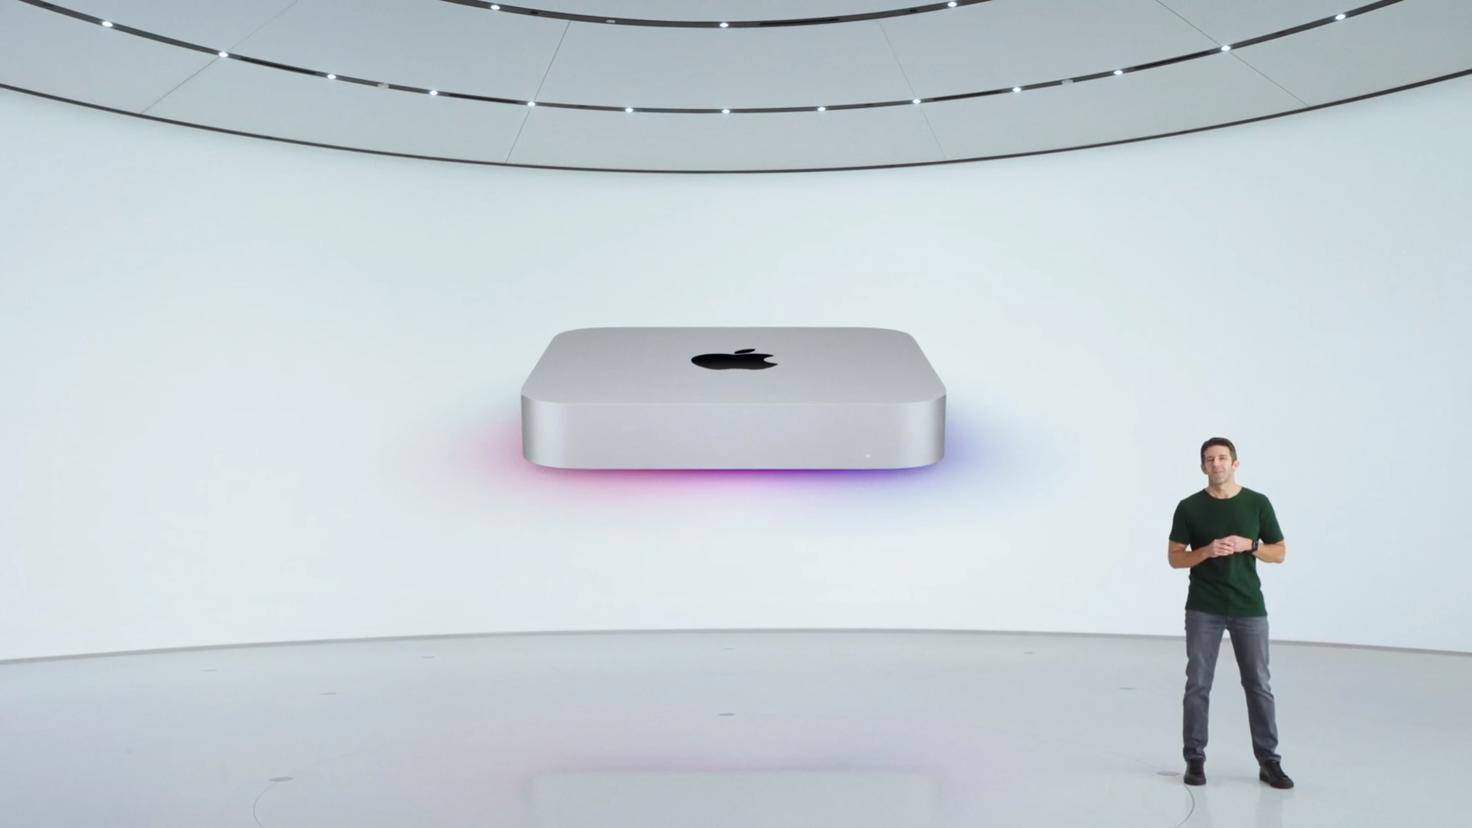 apple-mac-mini-2020